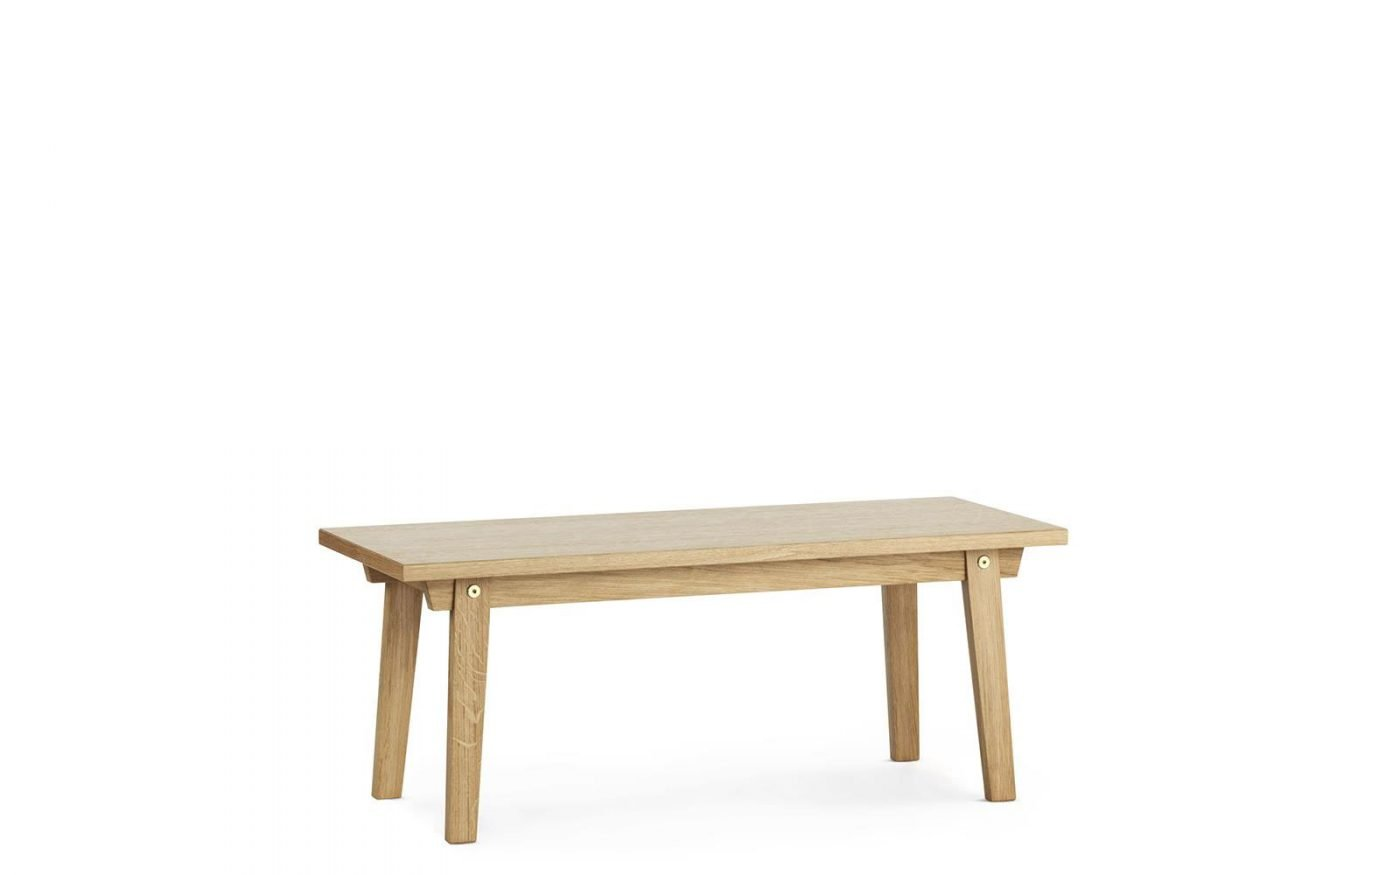 slice-Coffee-table-normann-copenhagen-table-3